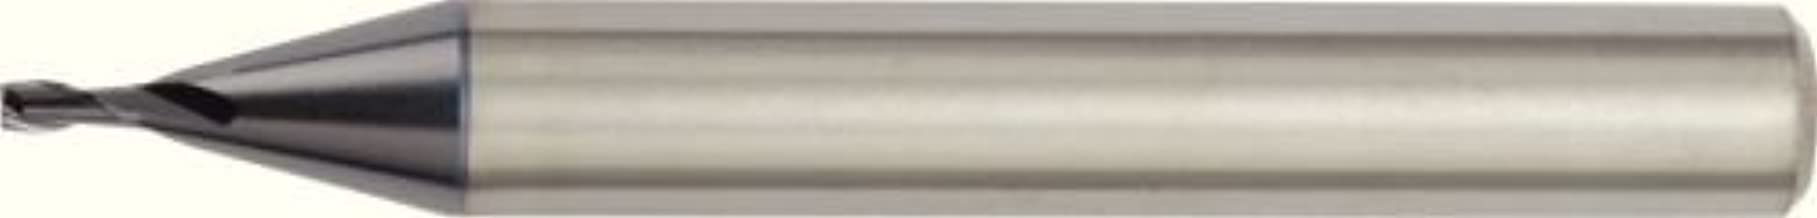 Best widia solid carbide end mills Reviews